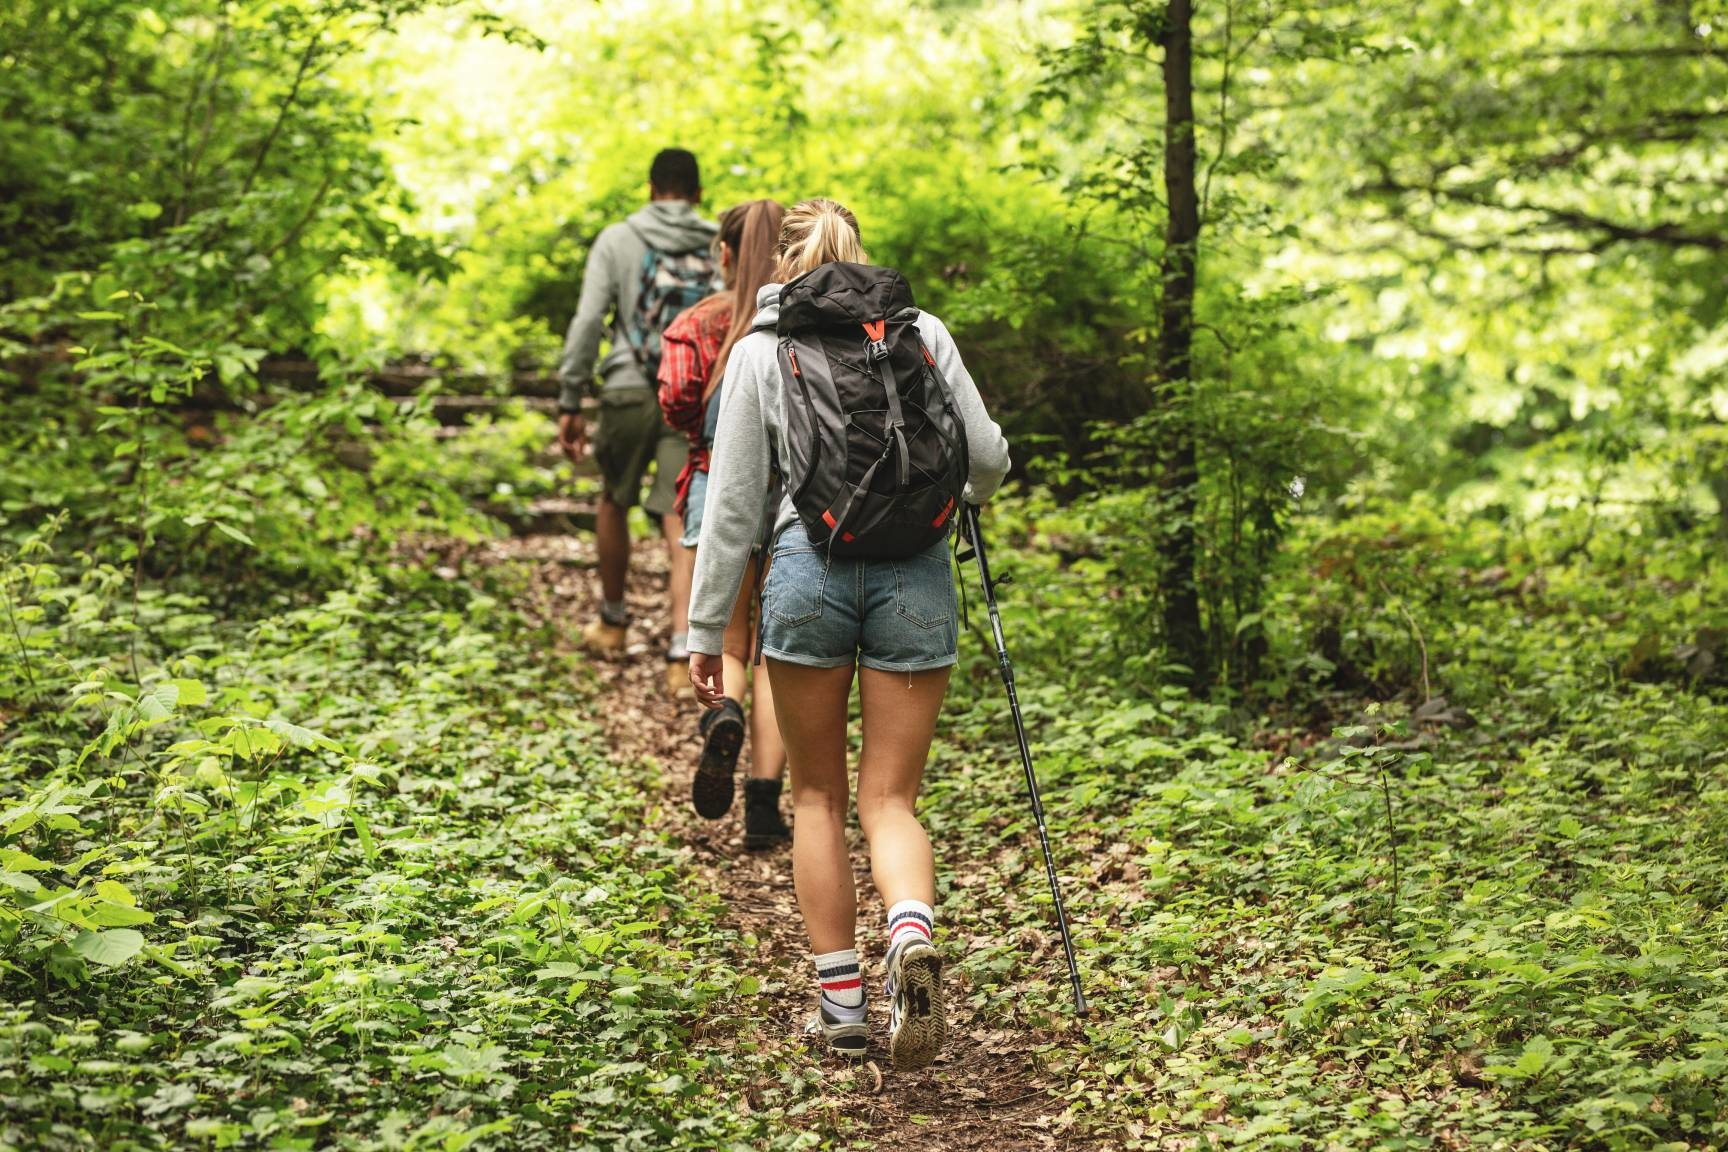 two people hiking in a green forest wearing shorts - spring weather